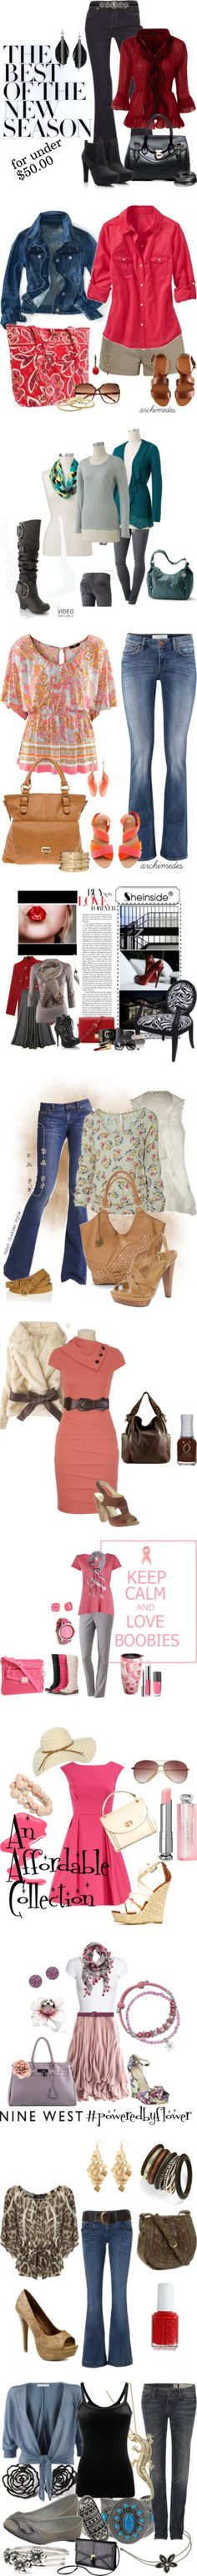 """""""Affordable classic looks"""" by prncsskimb ❤ liked on Polyvore"""